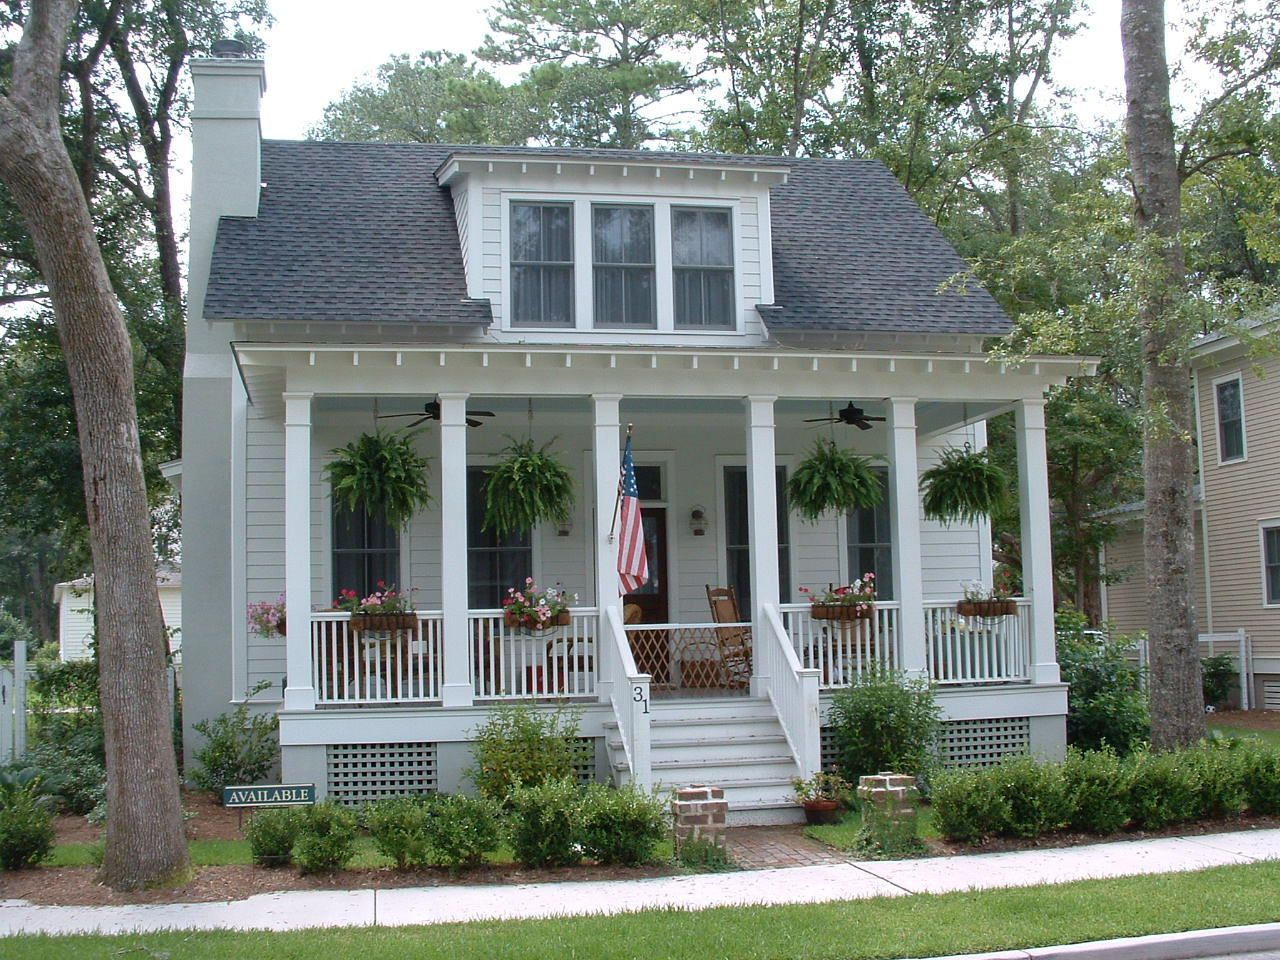 Cute little cottage cottages pinterest for Cottage mansion